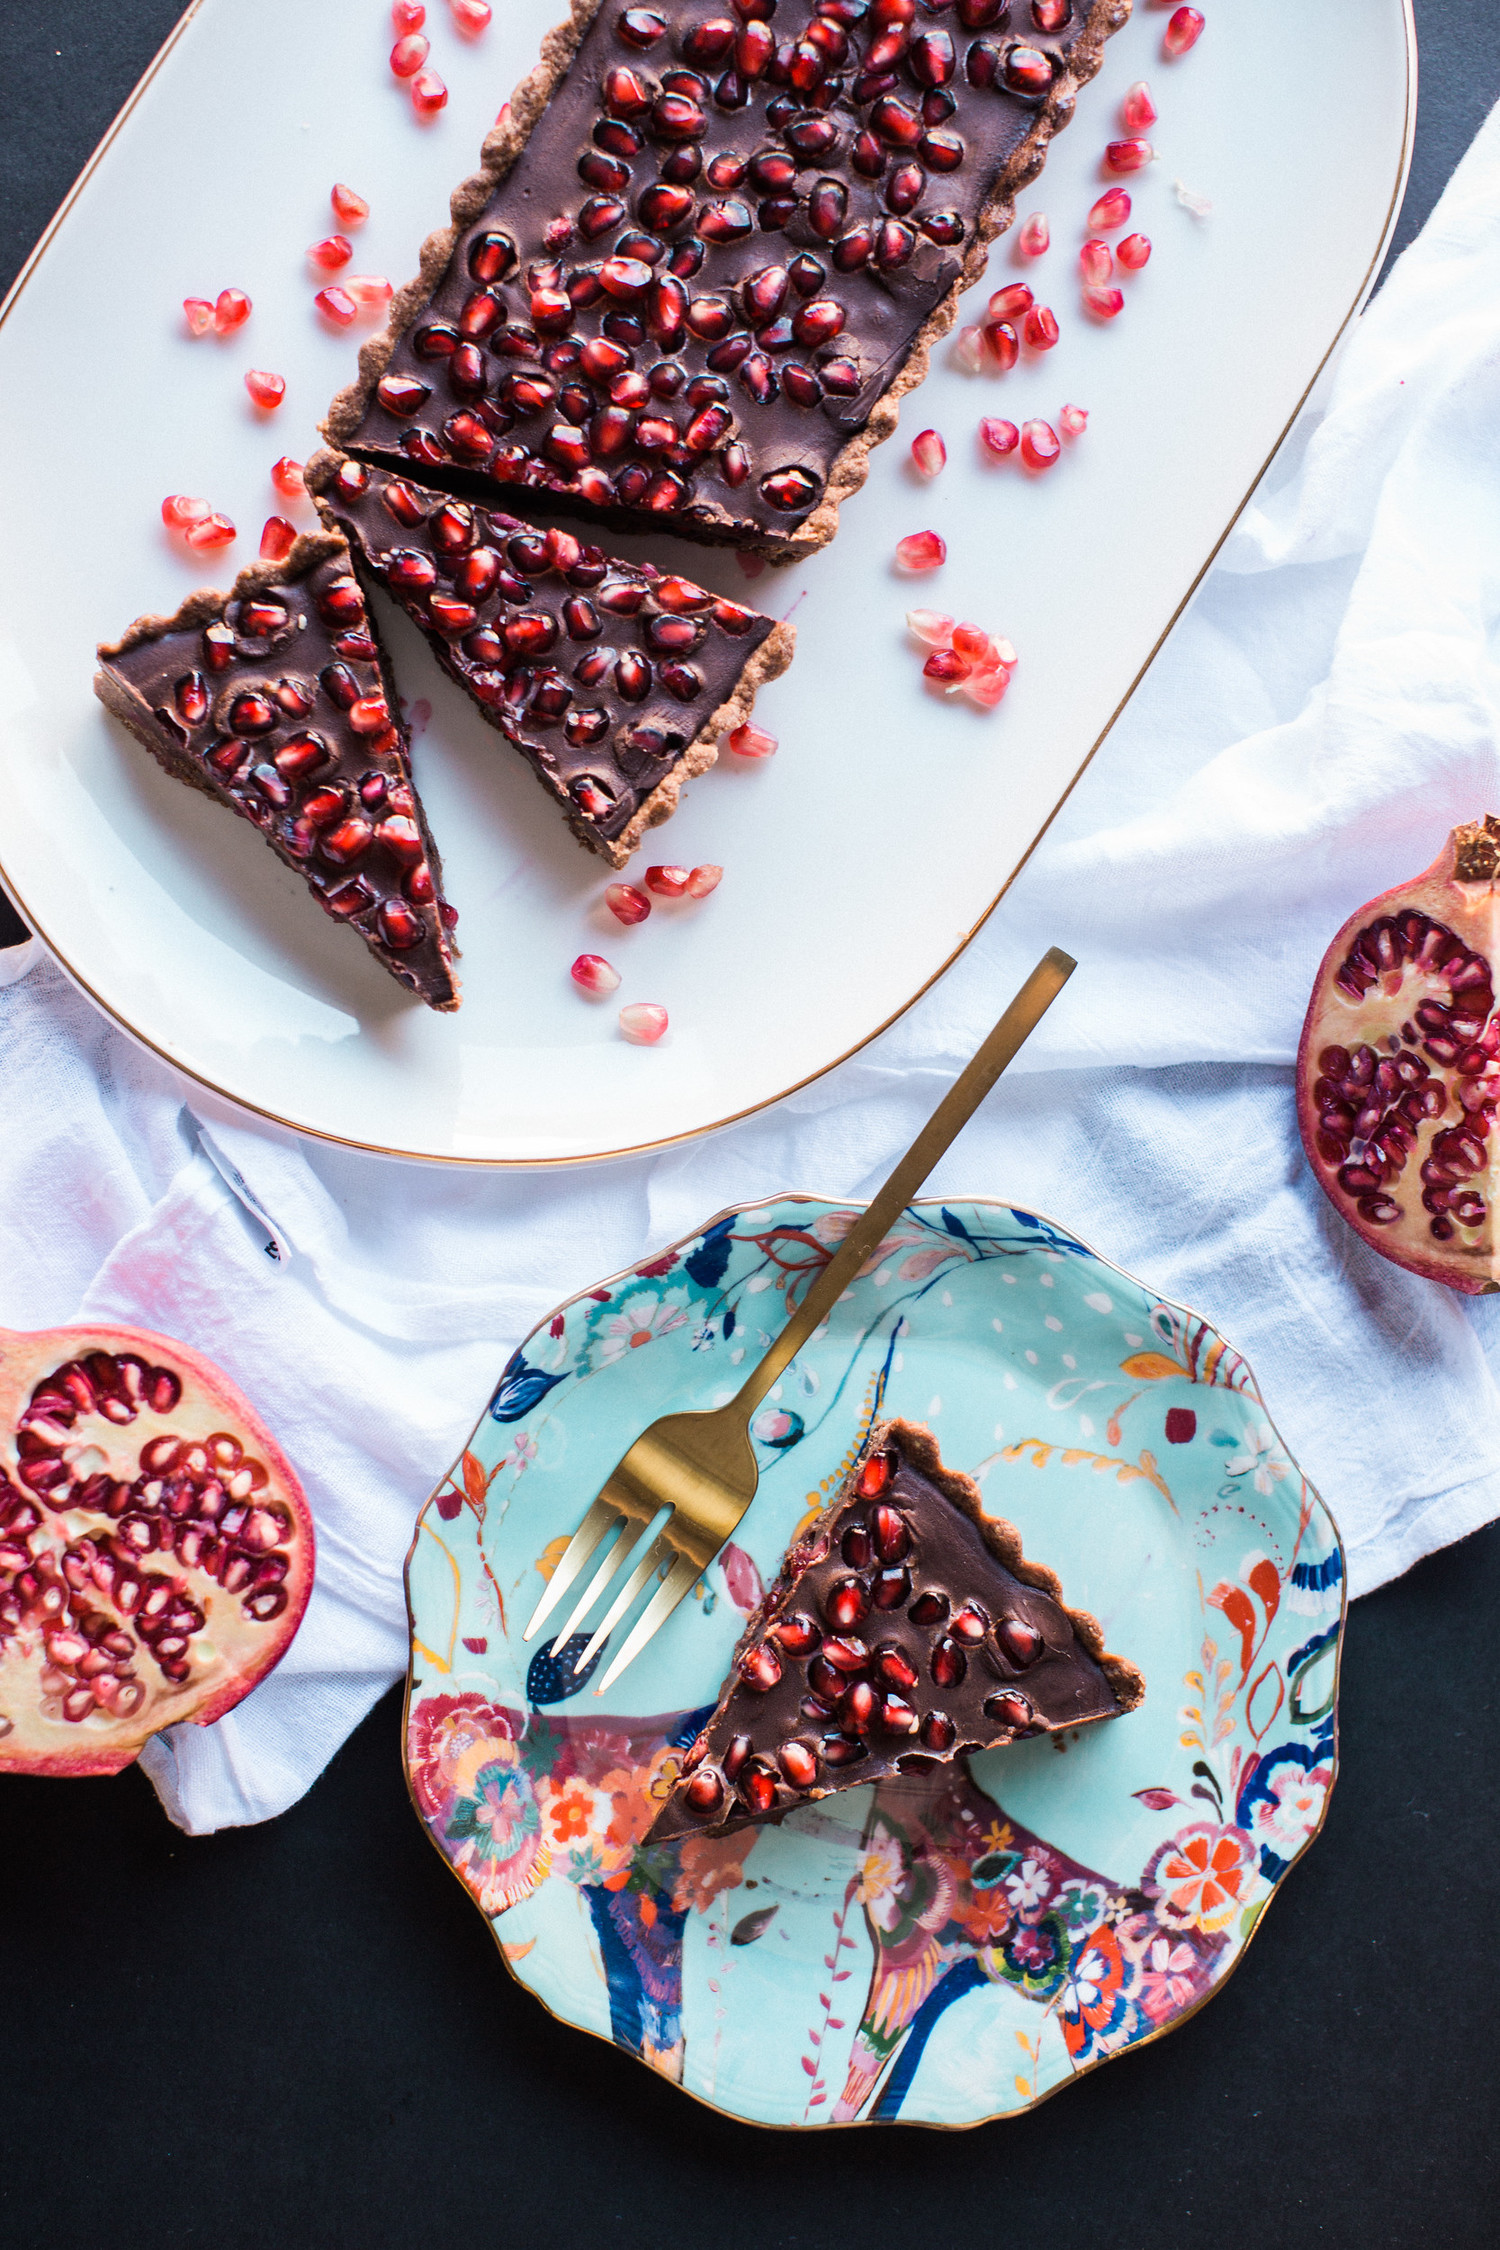 Honeysuckle's Chocolate and Pomegranate Tart